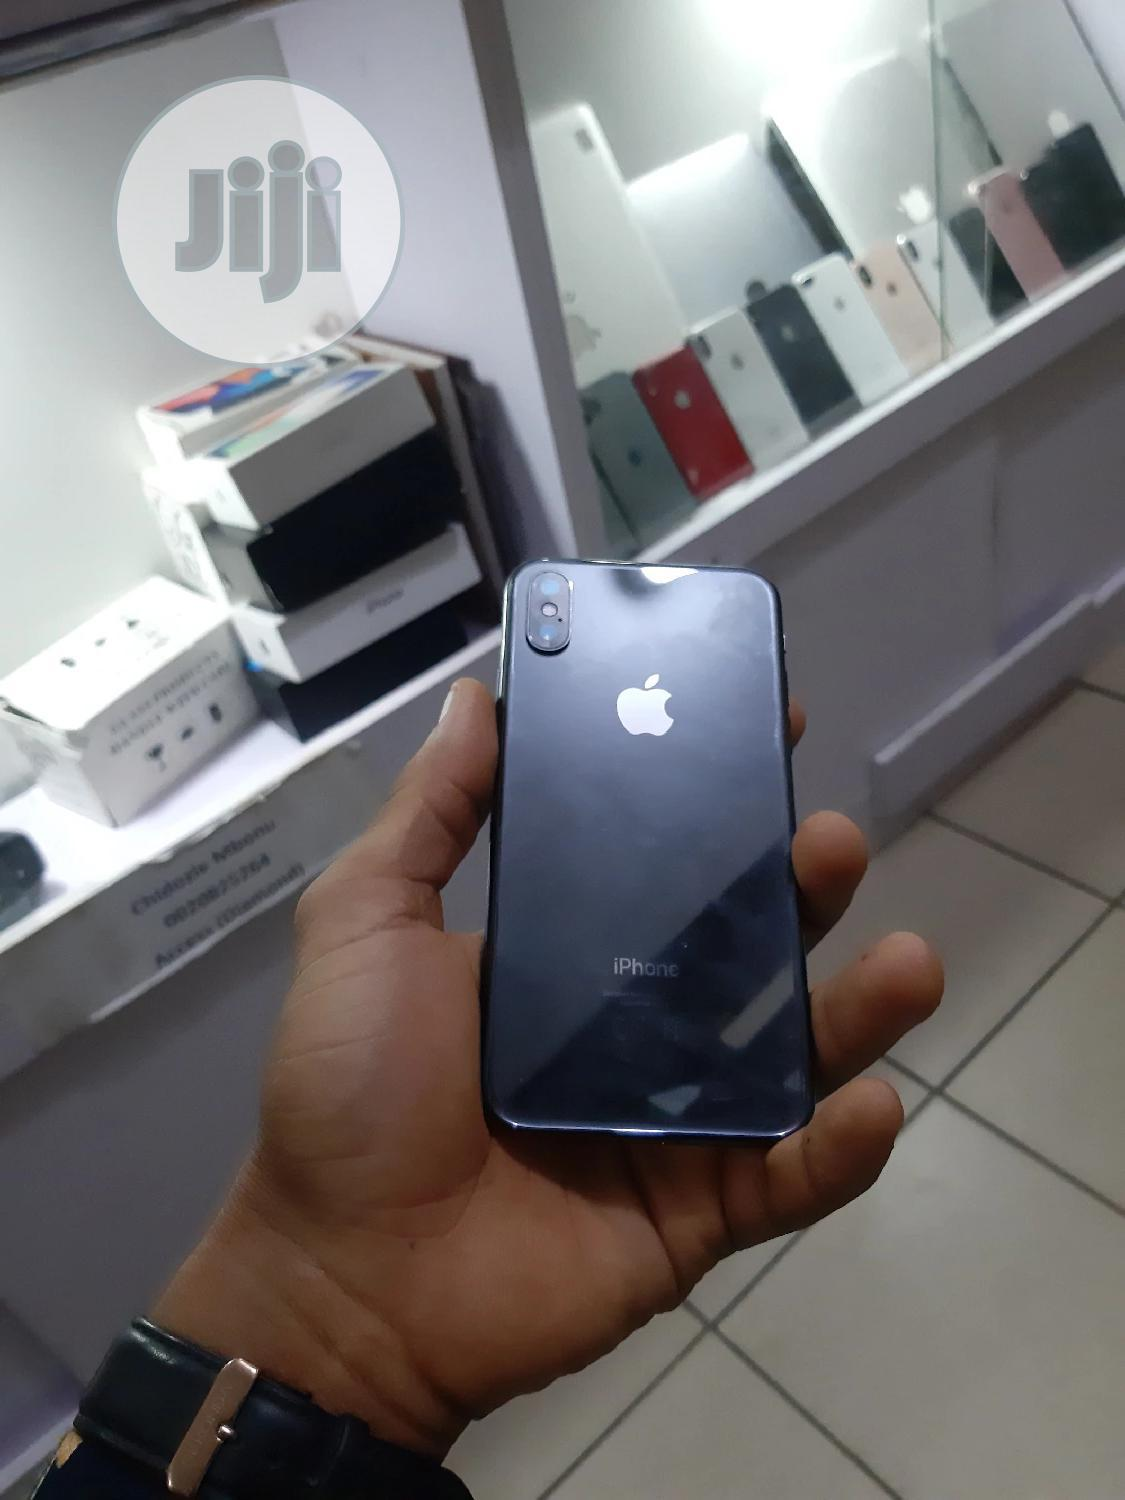 Apple iPhone X 256 GB Black | Mobile Phones for sale in Wuse 2, Abuja (FCT) State, Nigeria